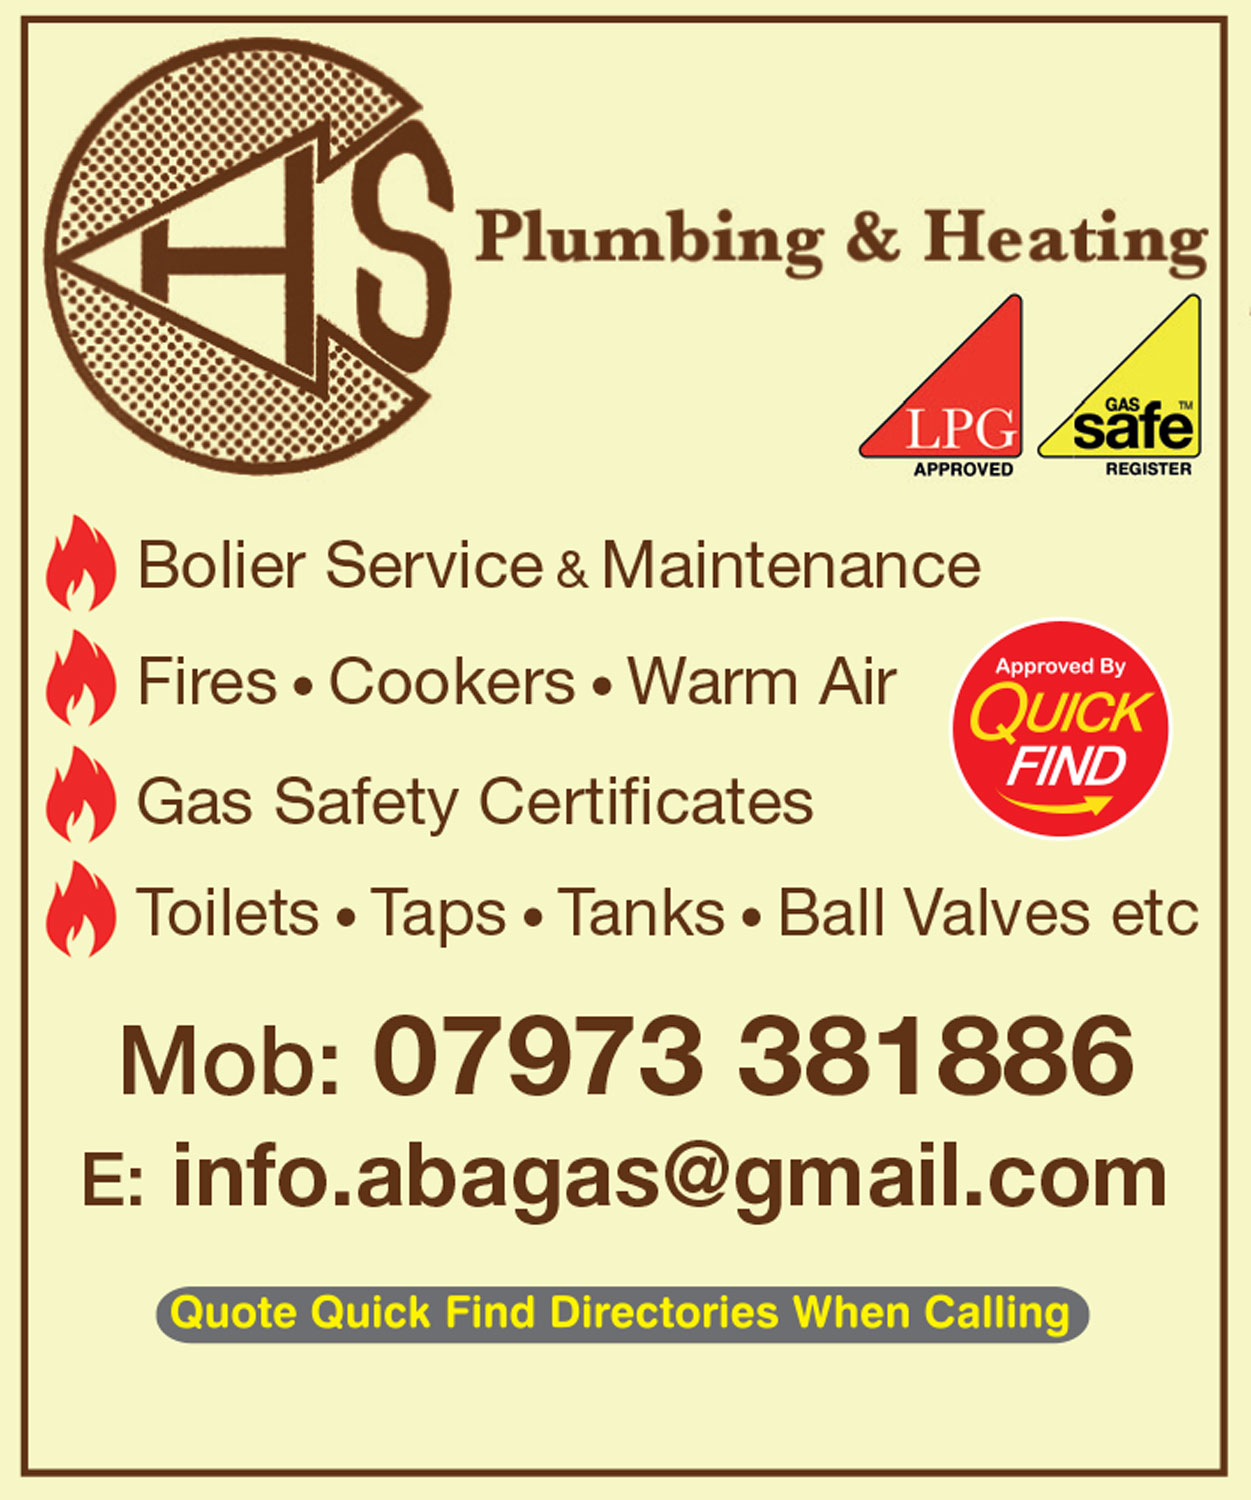 Abagas Plumbing & Heating